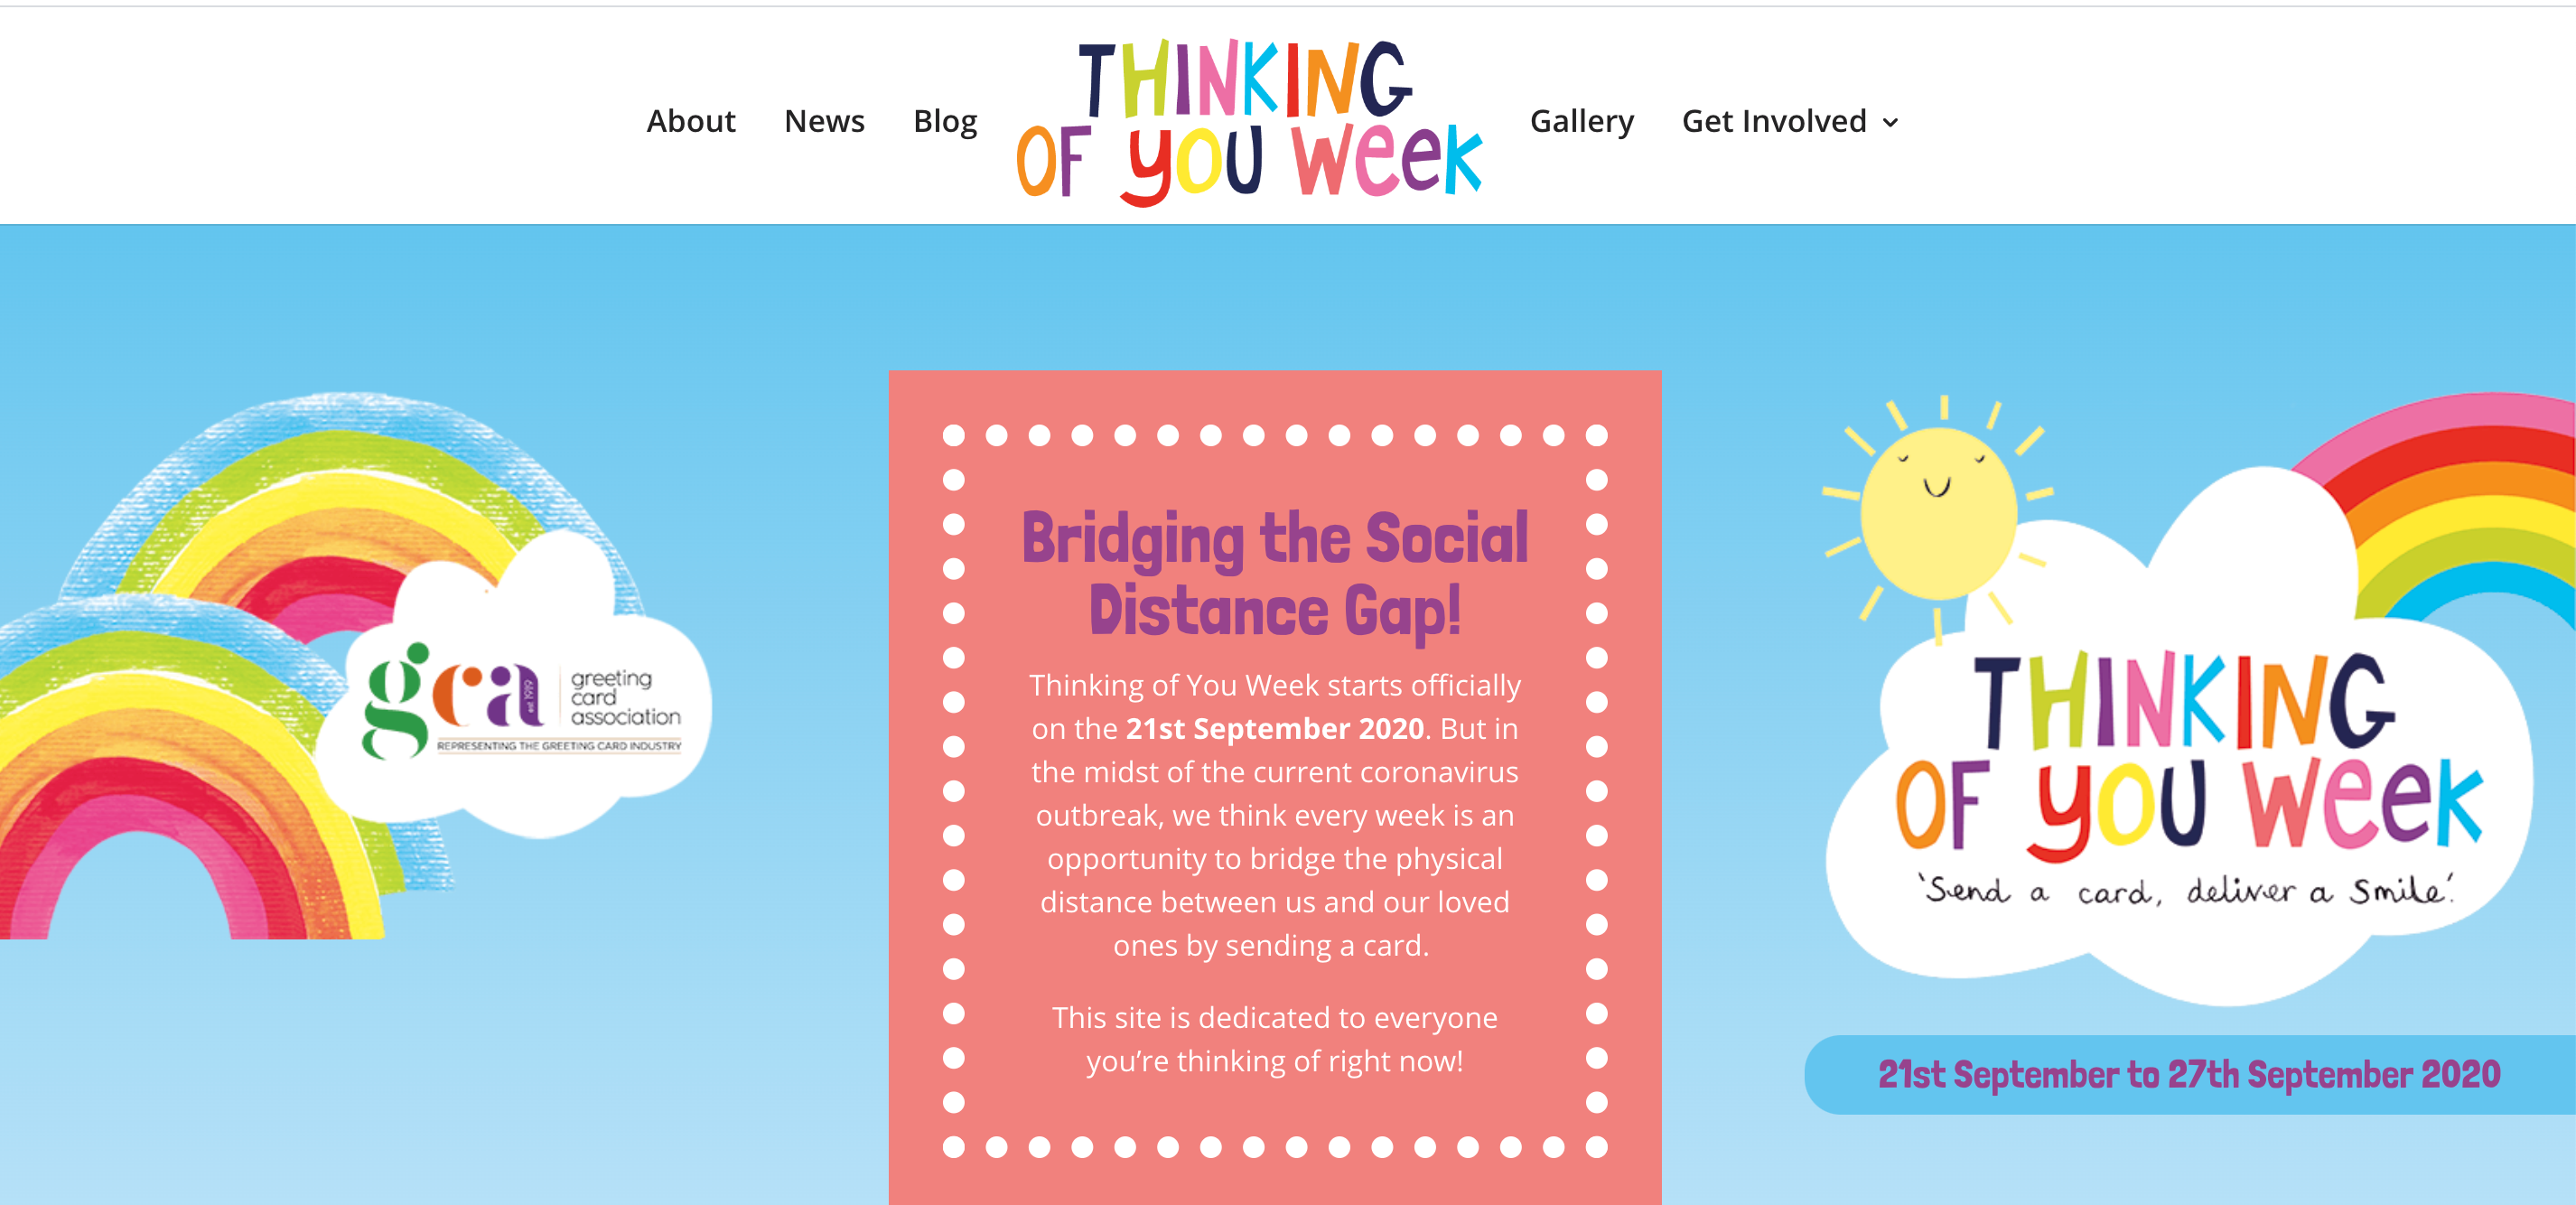 Above: The new Thinking Of You Week website features graphics created by Paper Salad, while the site was built by Raj Arora, md of Davora, a GCA council member.